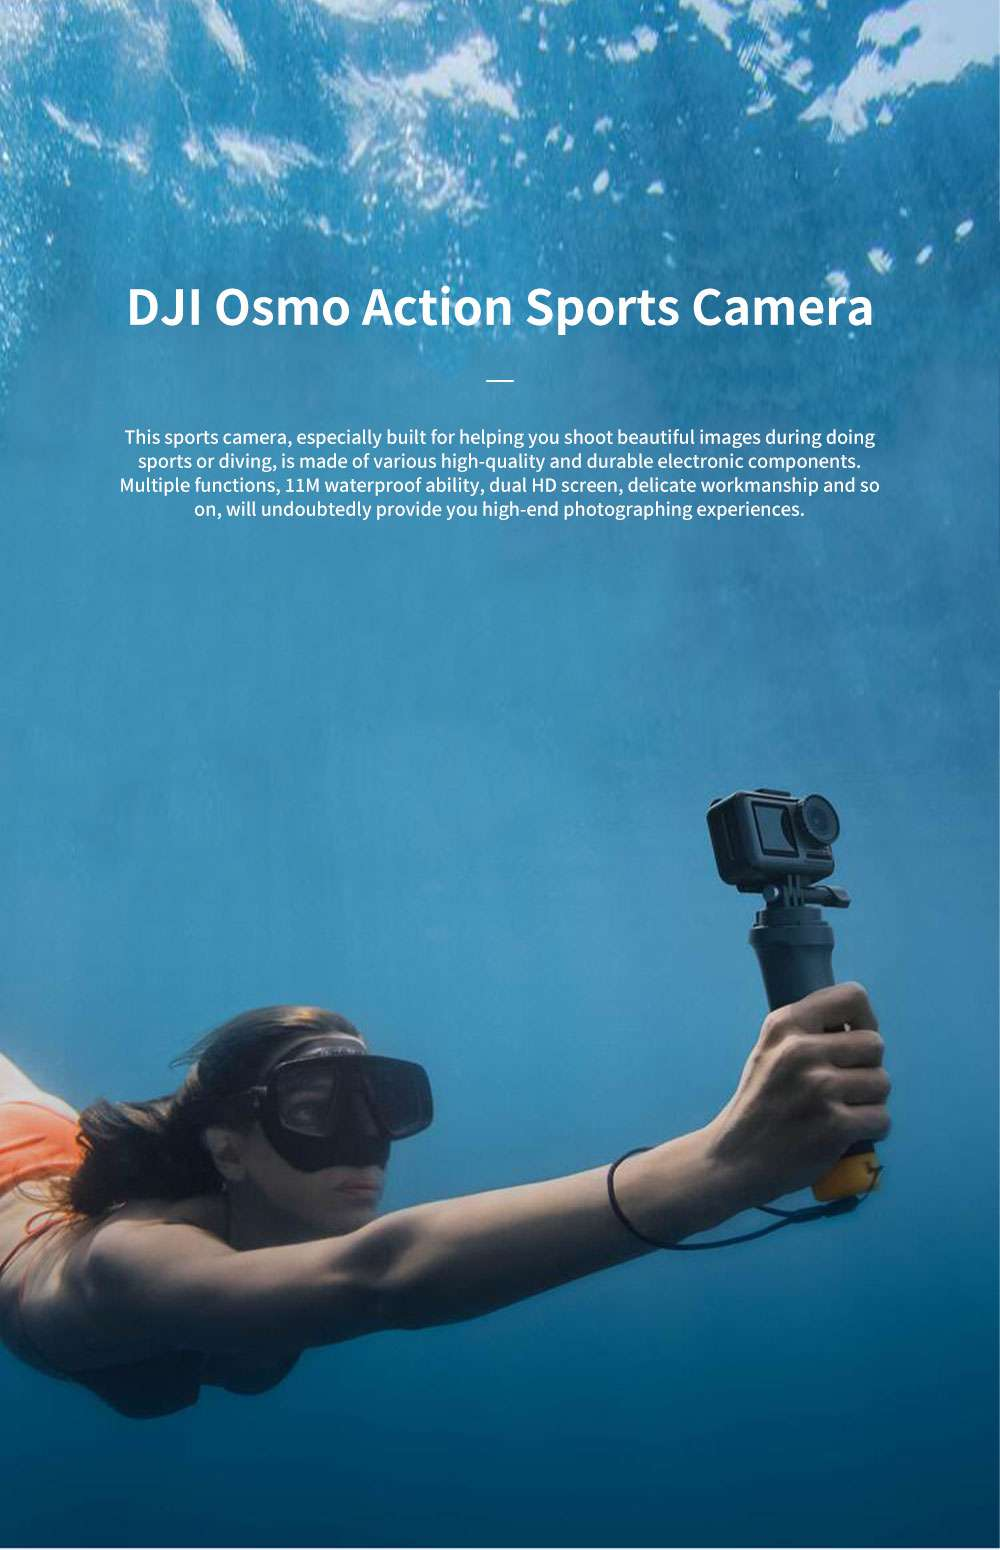 DJI Osmo Action Camera Professional Multifunctional Waterproof Sports Camera with Dual HD Screen Time-lapse Shooting Slow-motion Record Voice Control Easy Operation 0